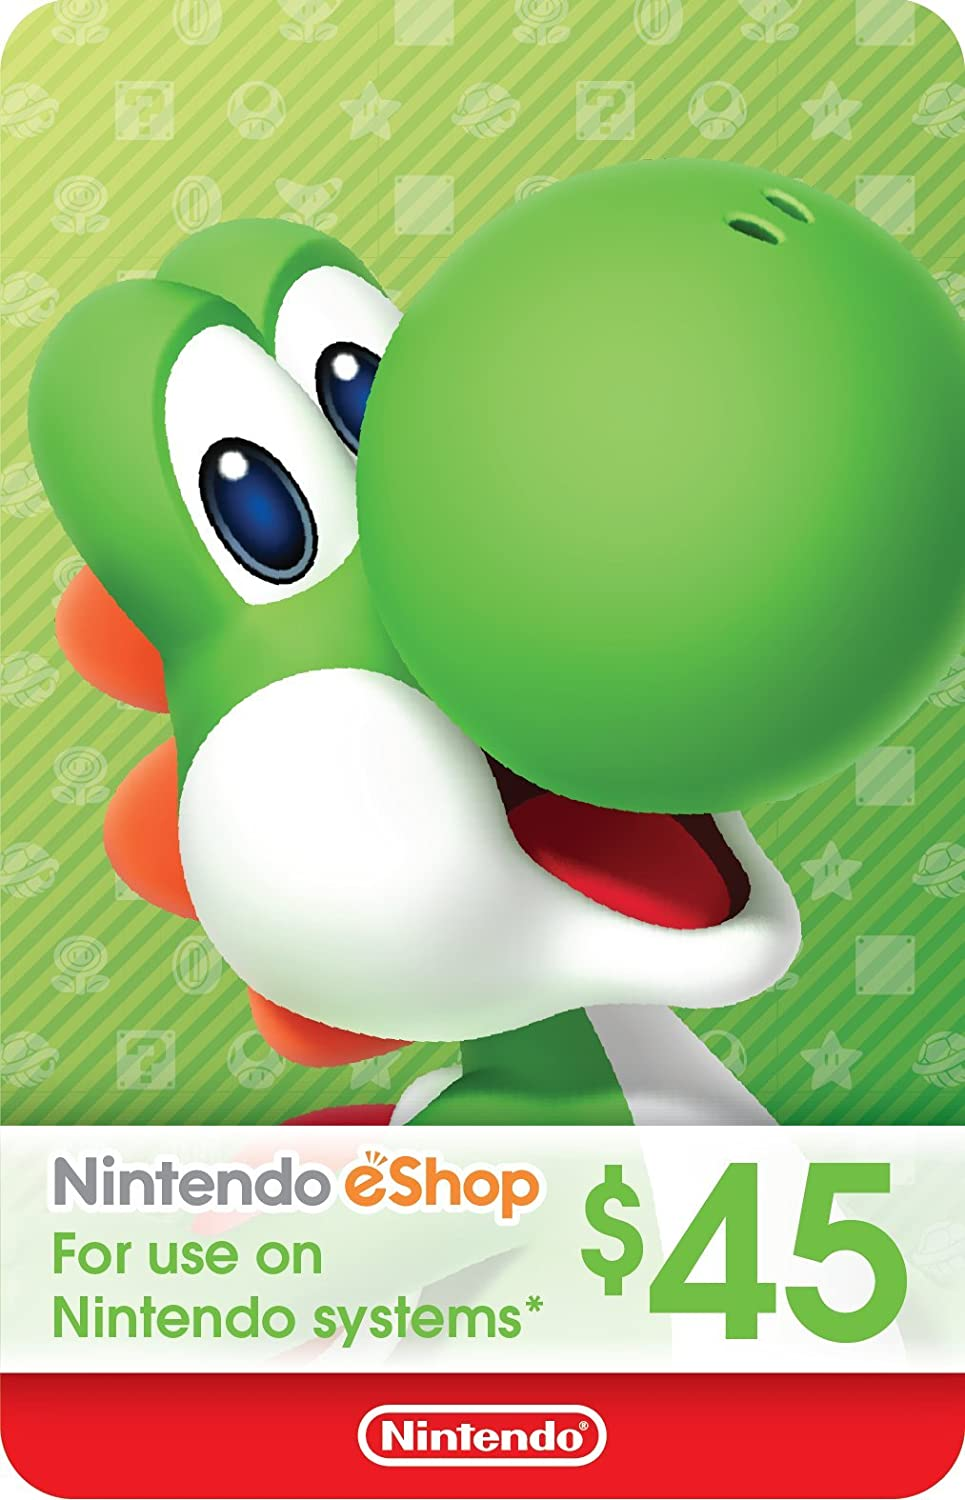 Amazon.com   45 Nintendo eShop Gift Card  45  Digital Code   Video Games 93f531062a5